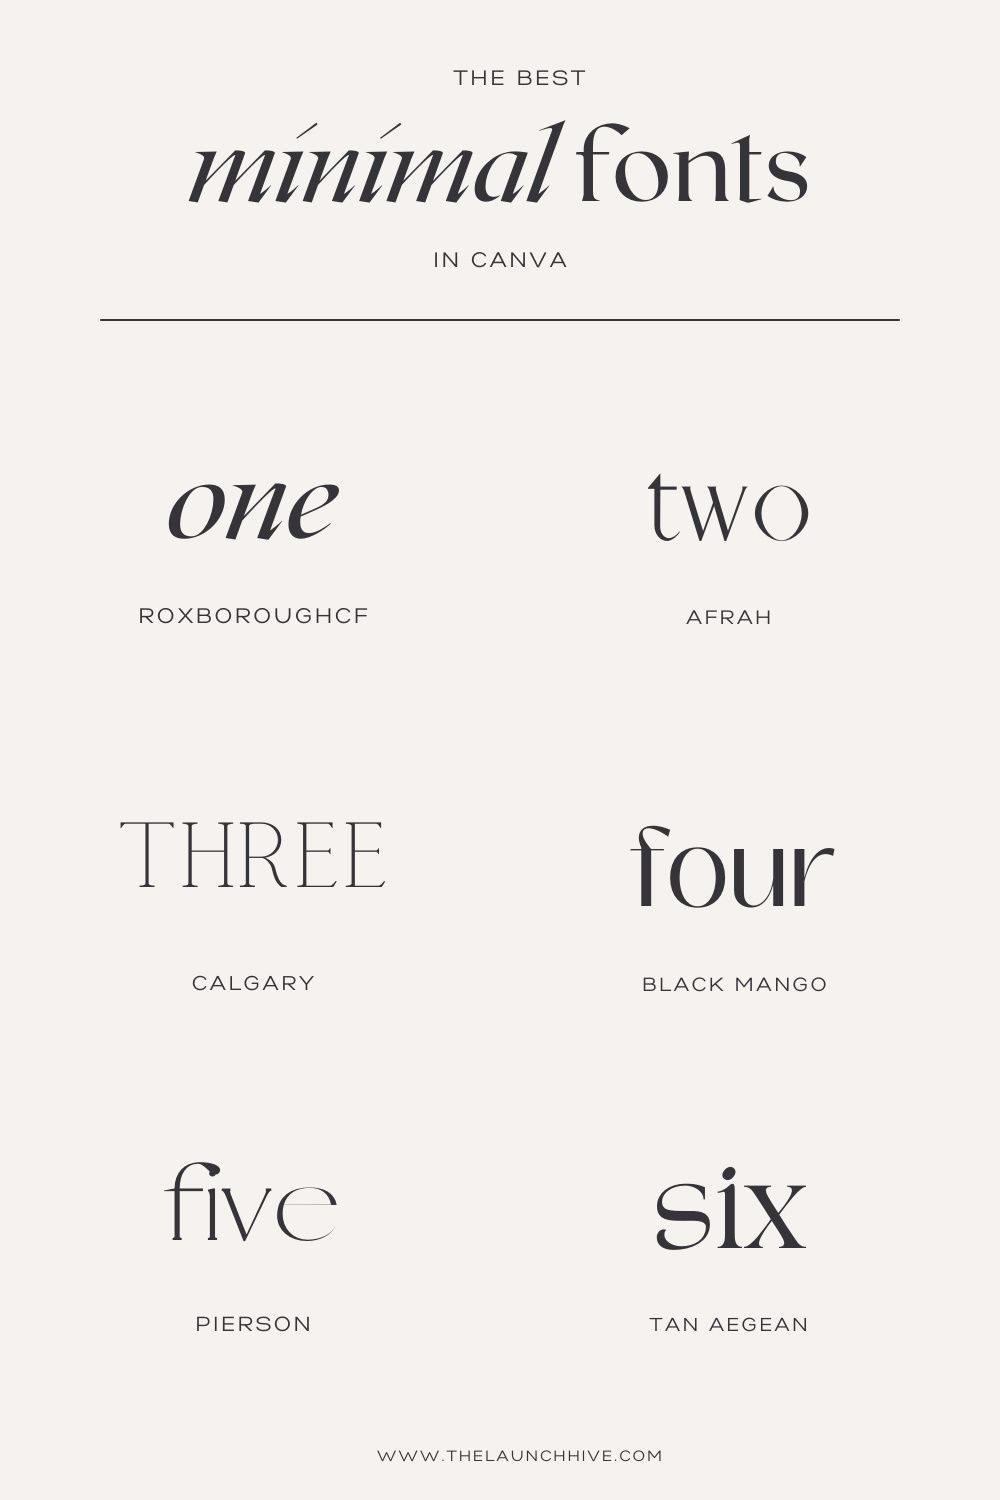 Top 7 Minimal Fonts In Canva